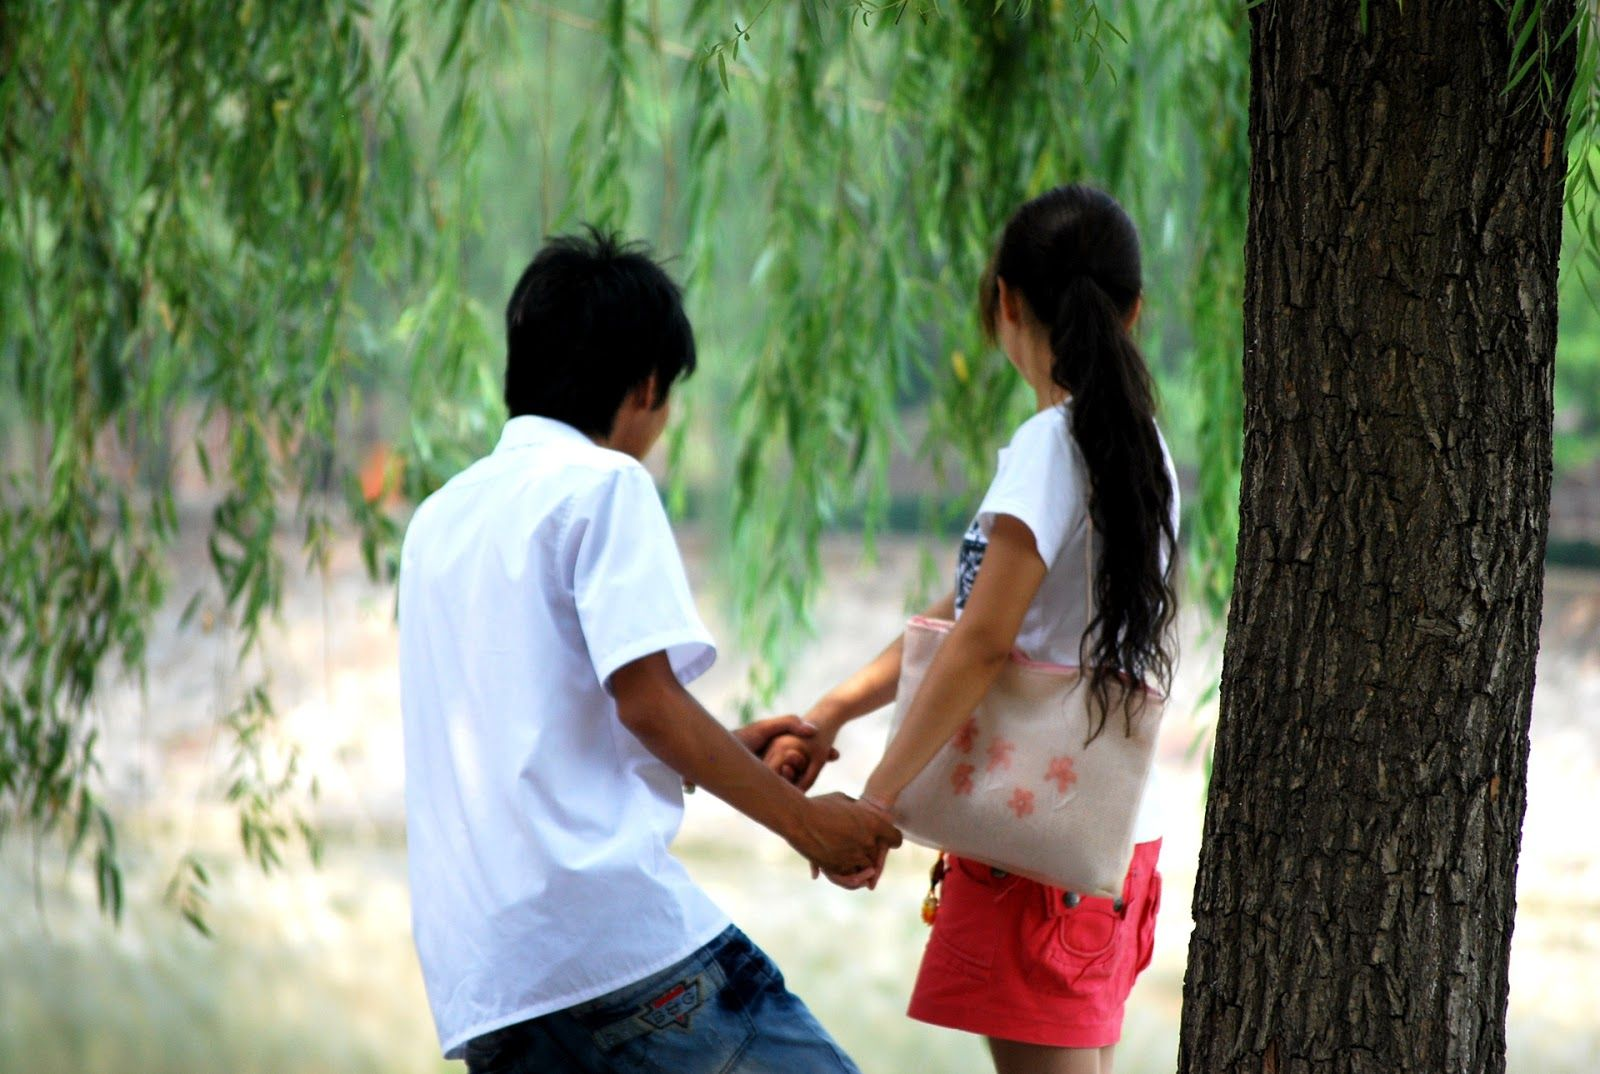 Wallpaper download couple love - Click Here To Download In Hd Format Download Couple Love In Garden Hd Wallpapers